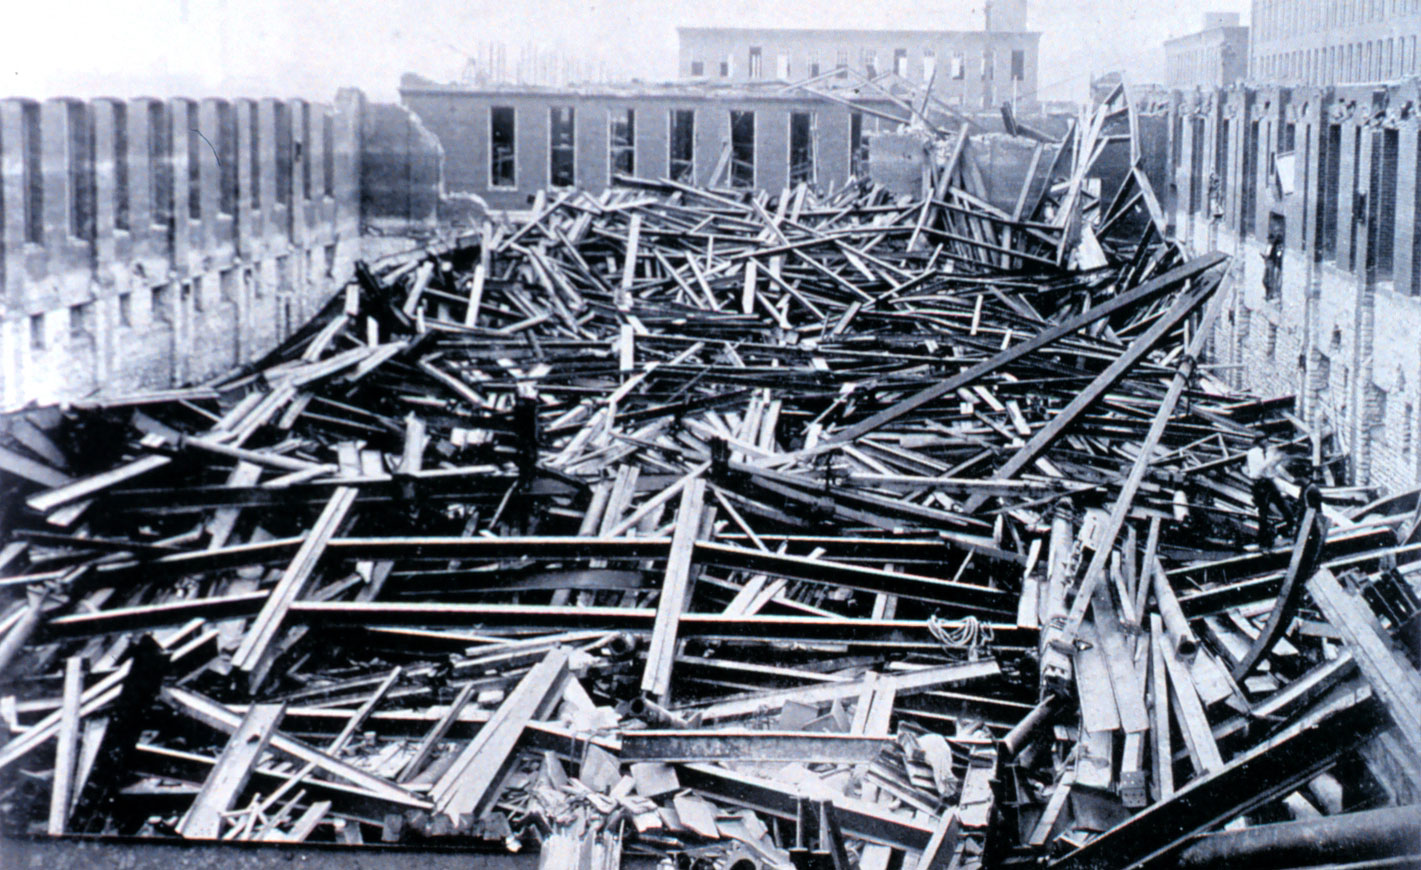 Photo of the Liggett and Myers Tobacco Factory after the May 27, 1896, Great St. Louis Tornado